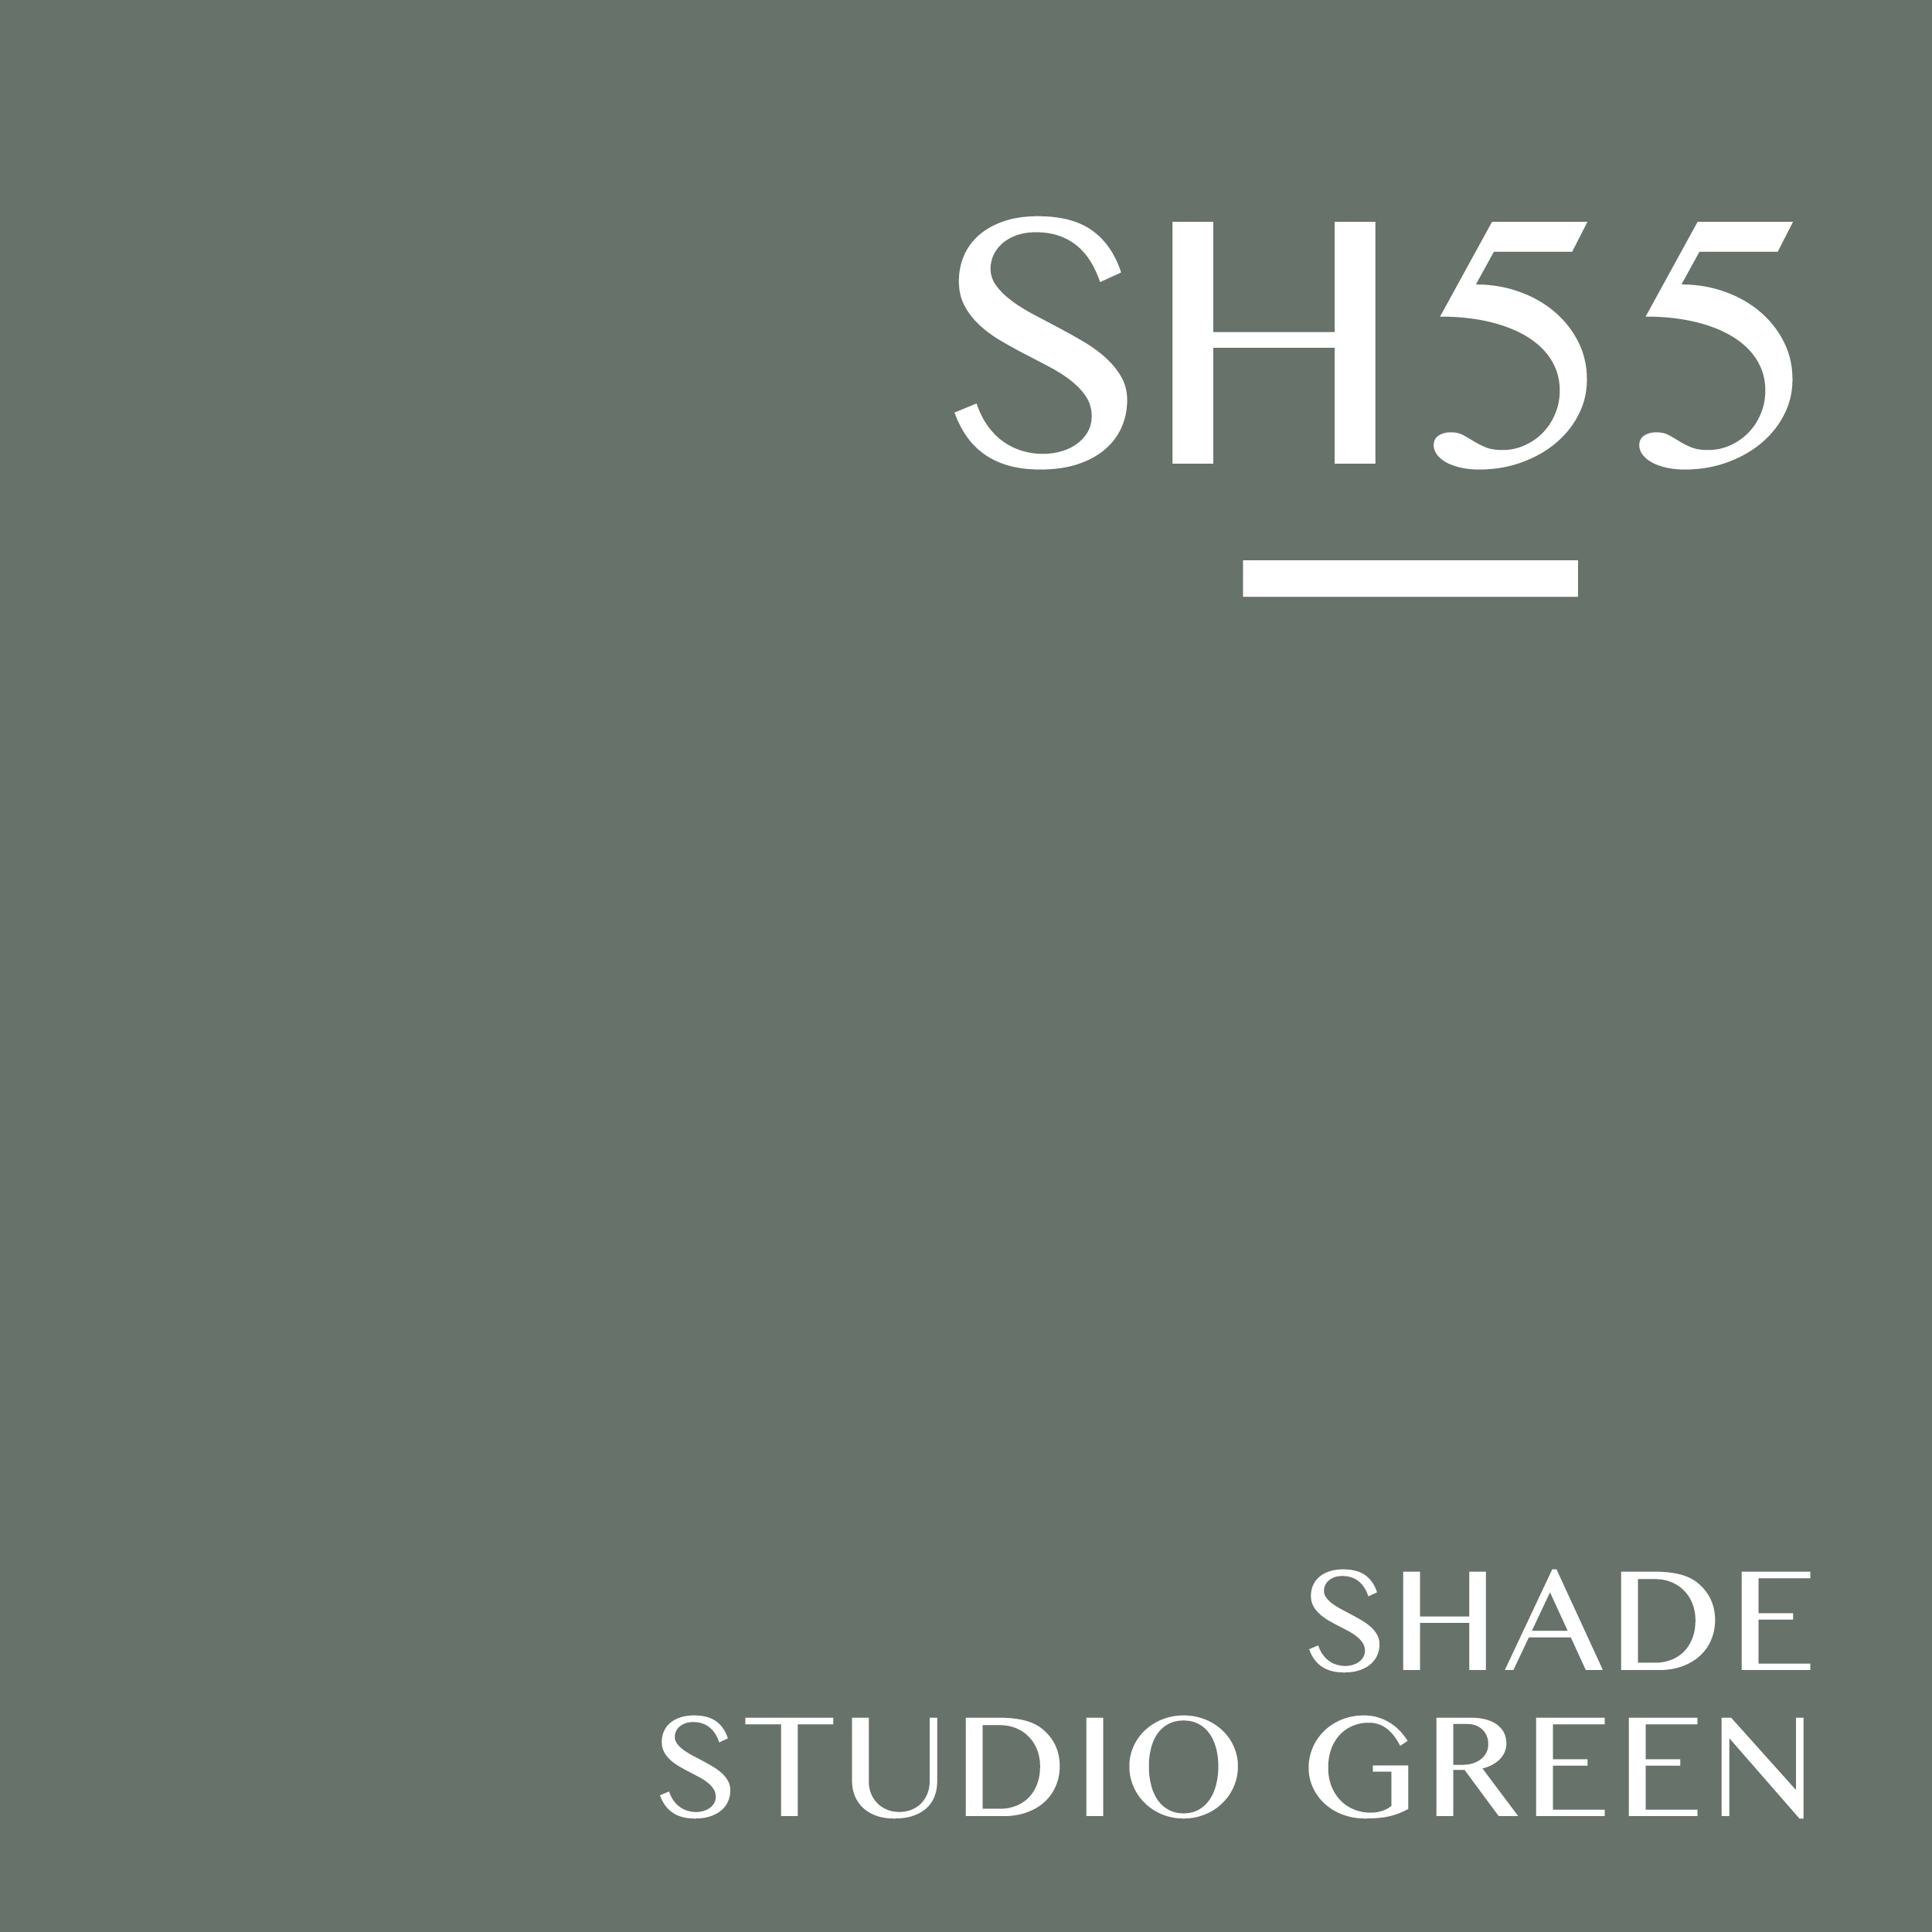 SHADE collection color blocks55